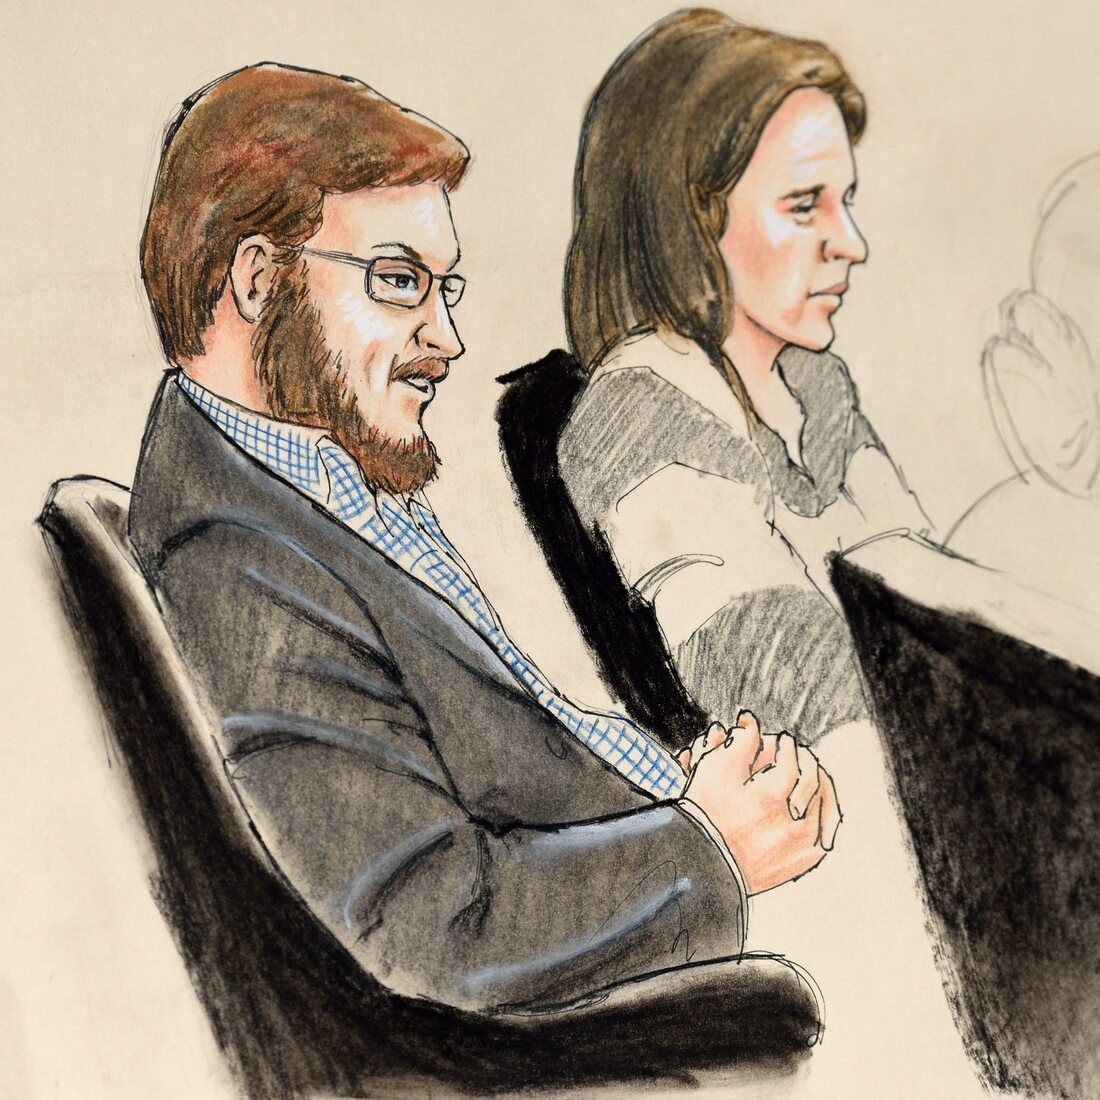 Jury Reaches Verdict In Aurora Movie Shootings Case: Trial Of Aurora Theater Shooting Suspect Could Be A Battle